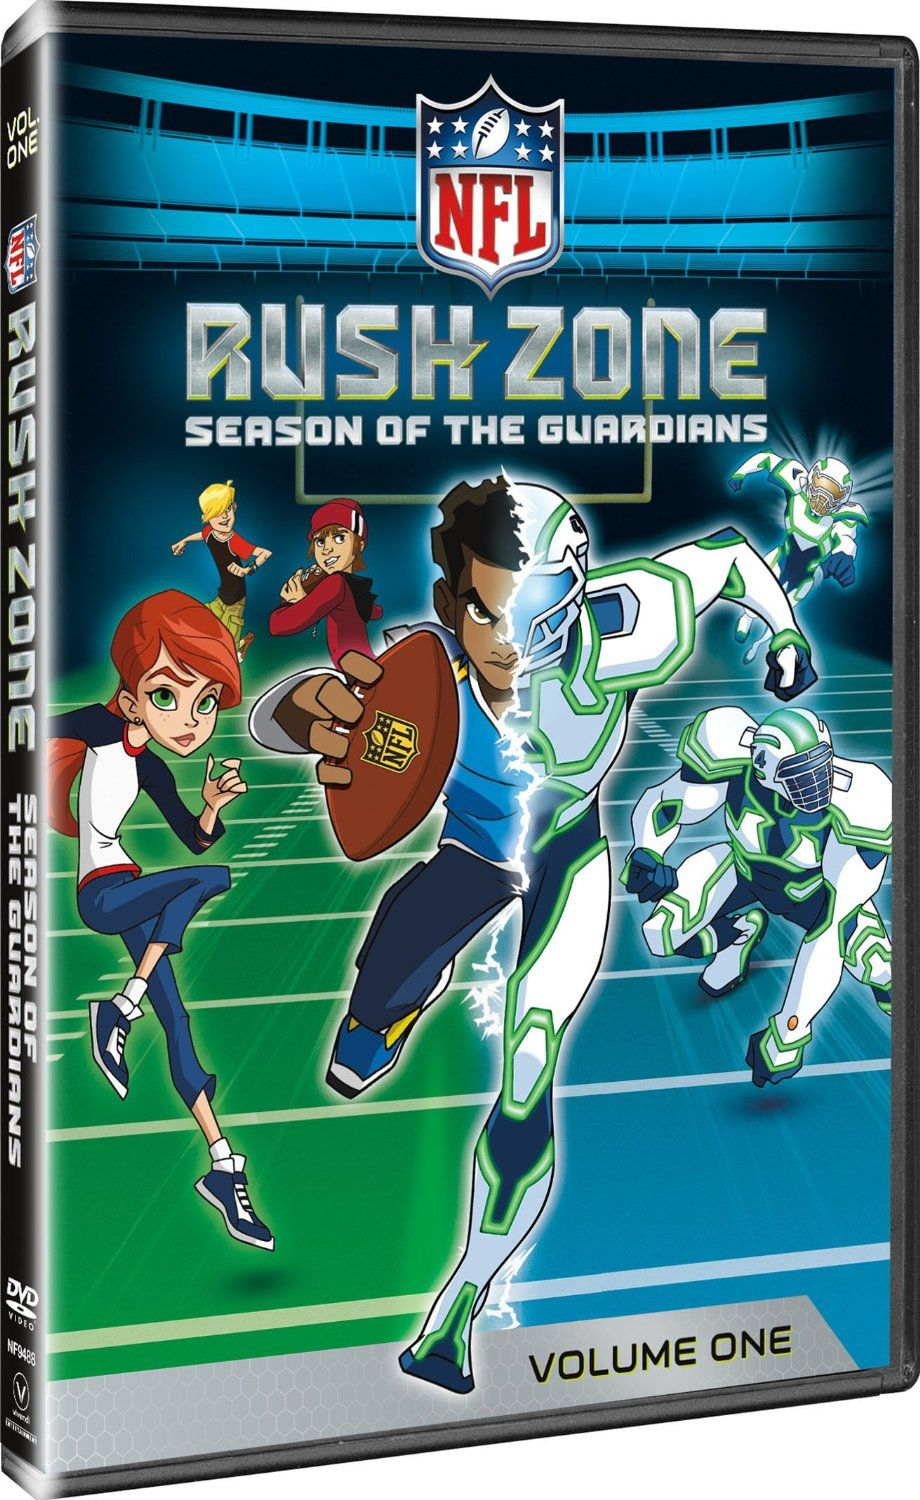 1000+ images about NFL RUSH ZONE Products on Pinterest | NFL ...